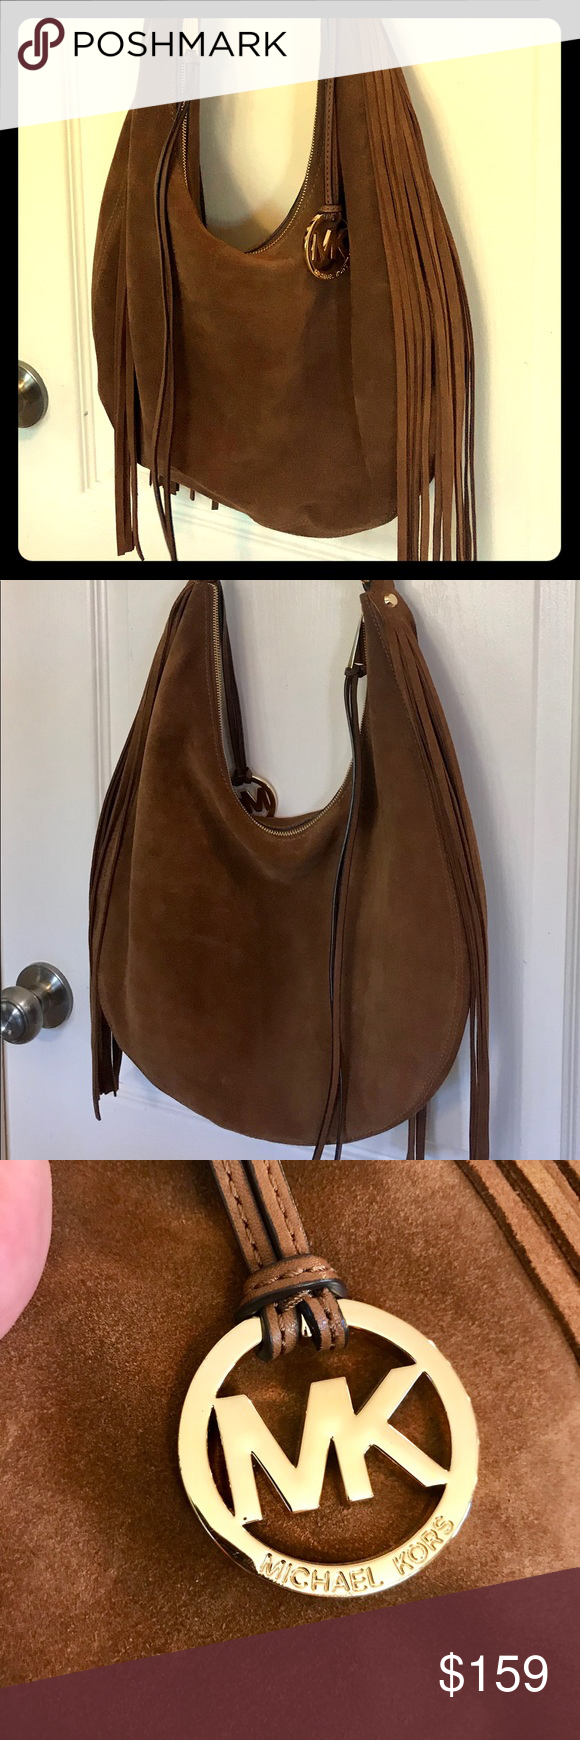 076824b3cd2a Michael Kors Rhea Large Slouchy Suede Leather Bag